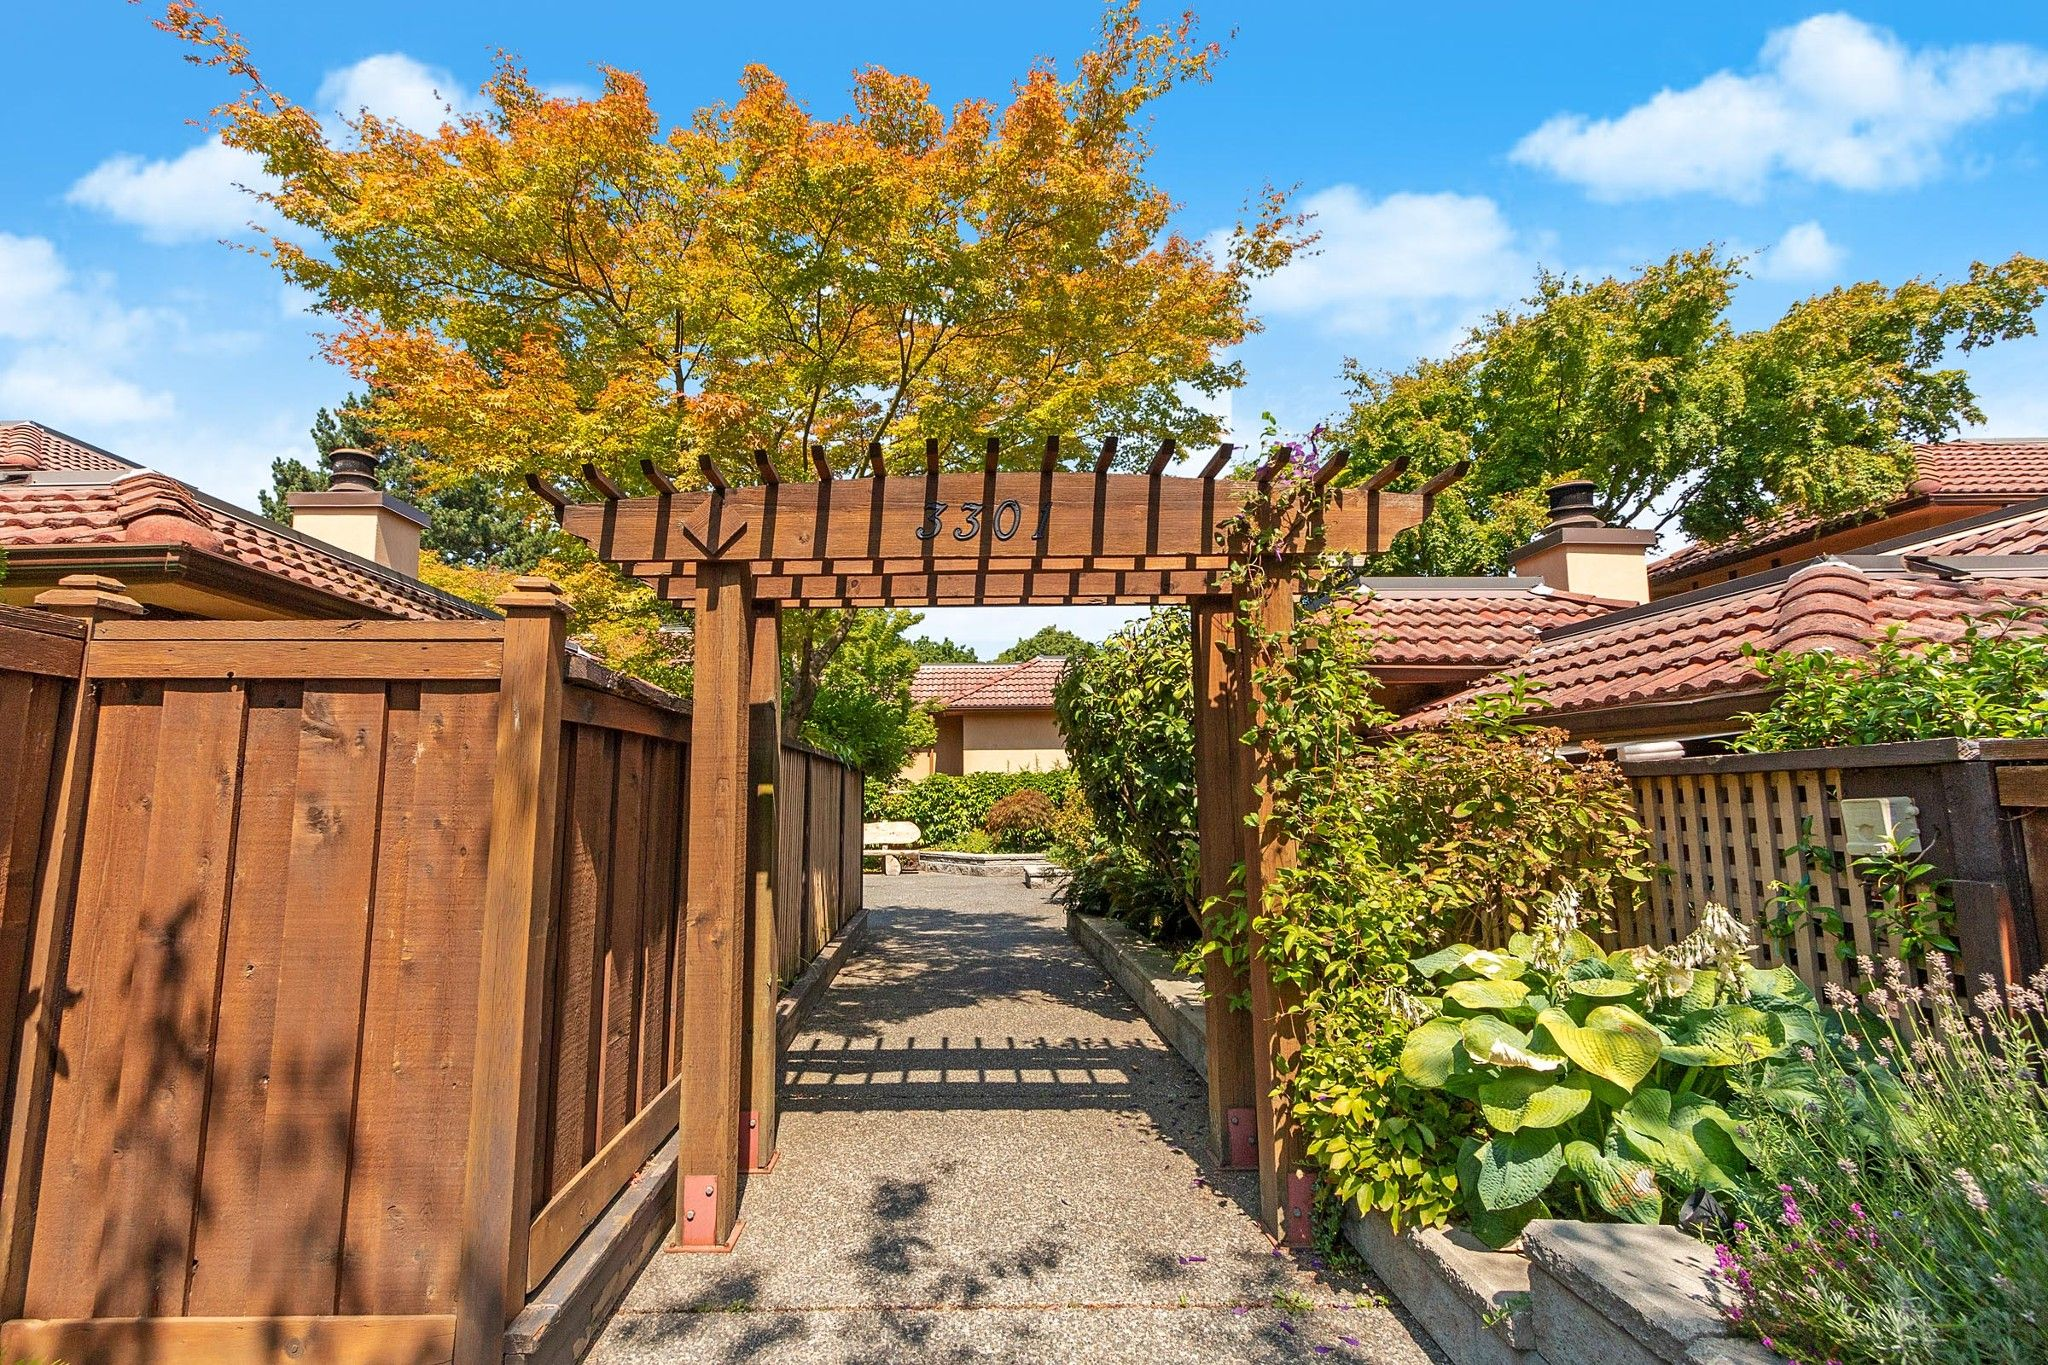 Main Photo: 1 3301 W 16TH Avenue in Vancouver: Kitsilano Townhouse for sale (Vancouver West)  : MLS®# R2608502